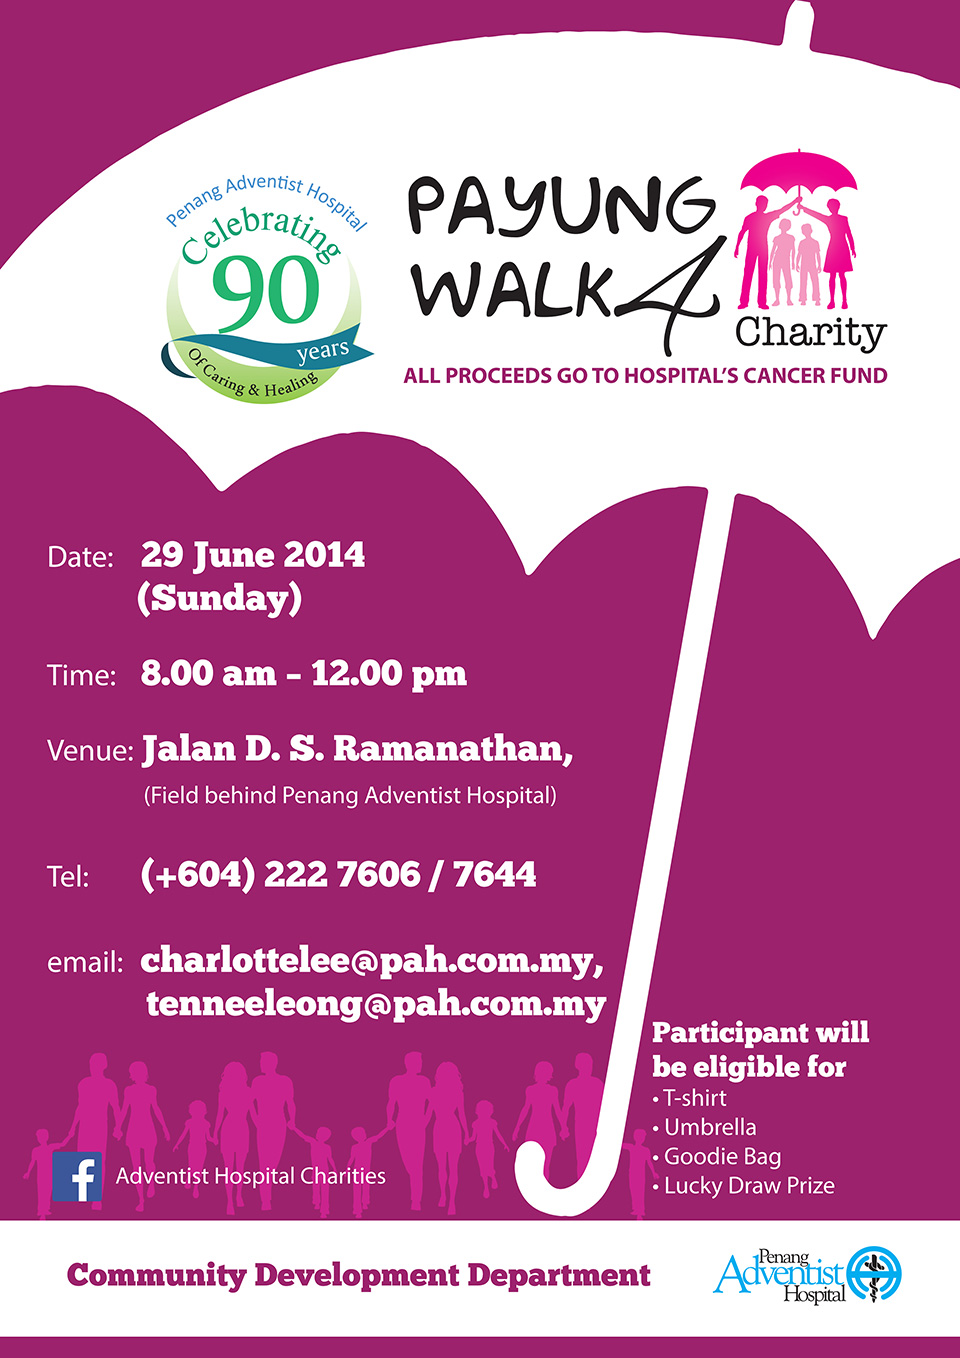 Payung Walk 4 Charity 2014: Show Your Support & Raise Funds for Cancer Patients